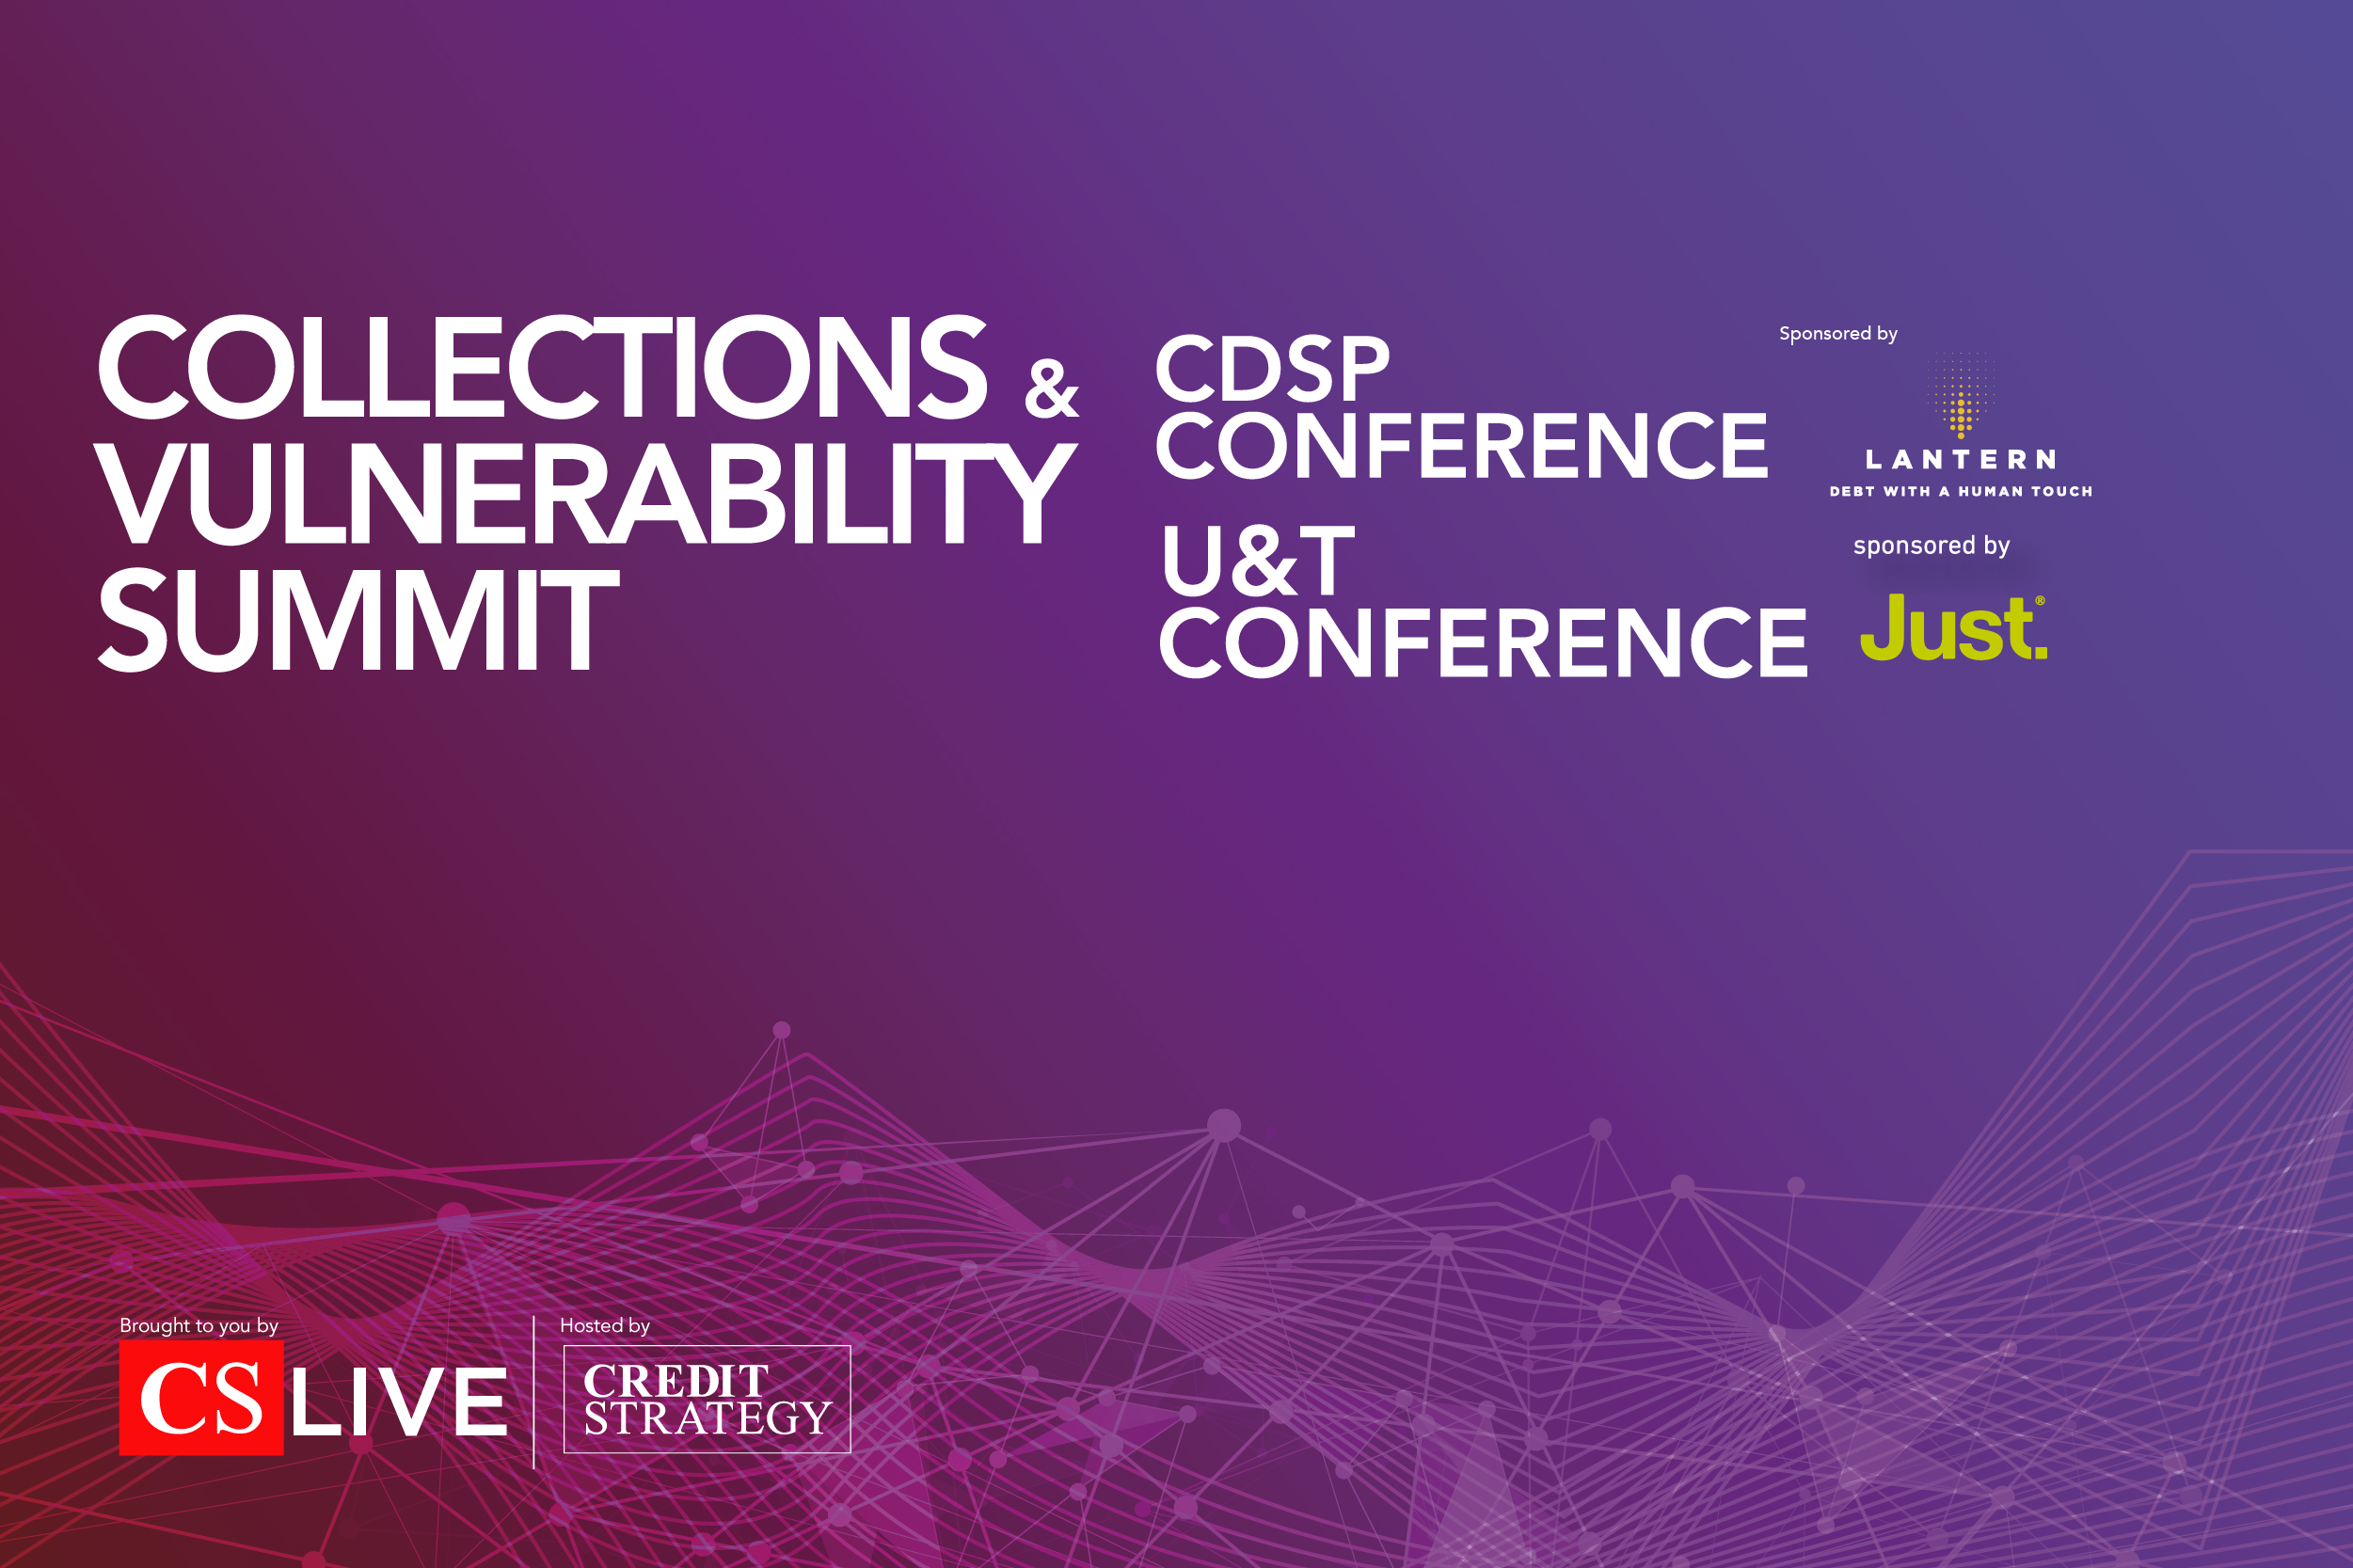 Collections & Vulnerability Summit featuring the U&T Conference and CDSP Conference